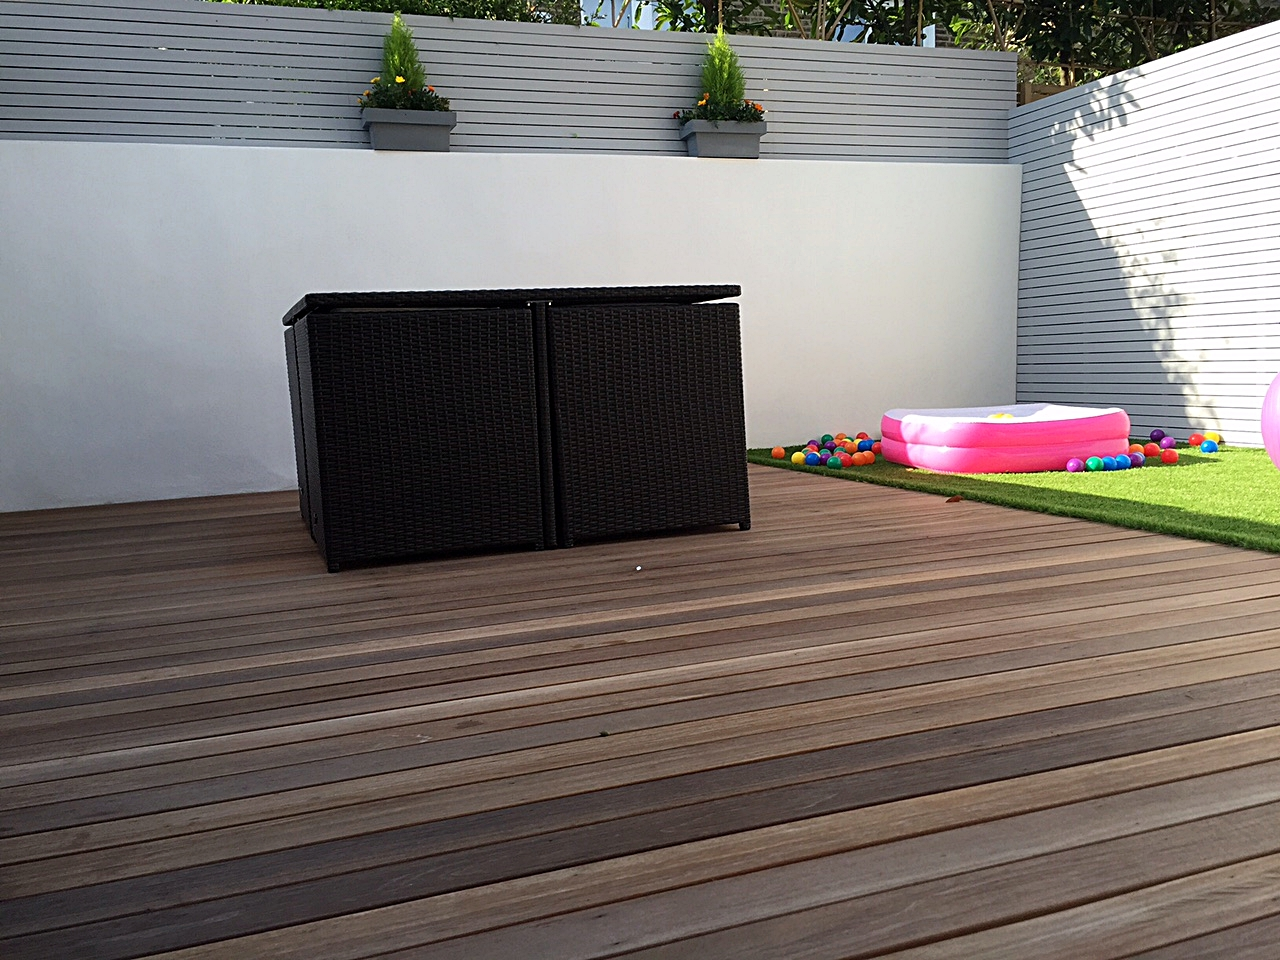 garden design hardwood screen painted grey balau hardwood decking artificial grass easi lawn turf low maintenance family garden balham clapham tooting battersea london